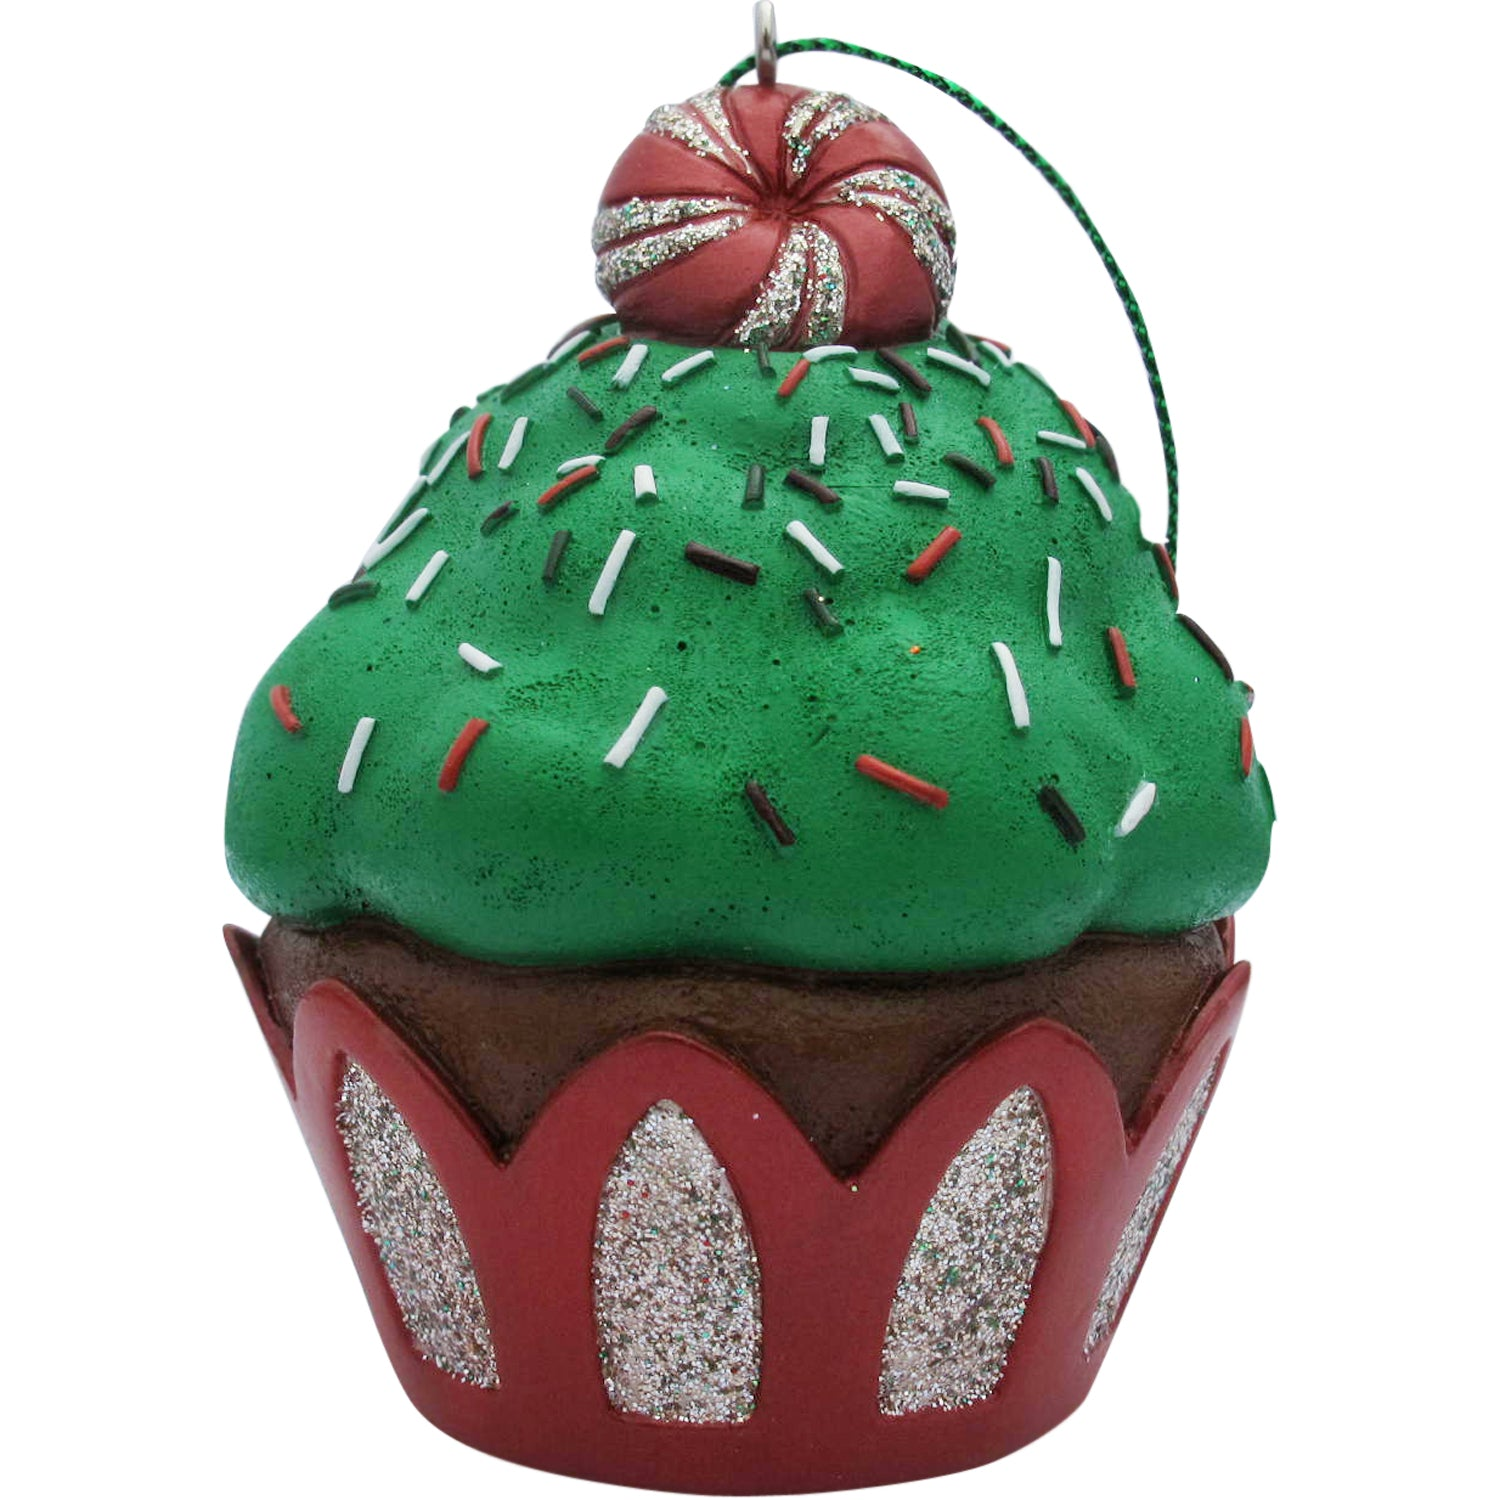 Green Peppermint Top Cupcake Christmas Tree Ornament - Present Paper